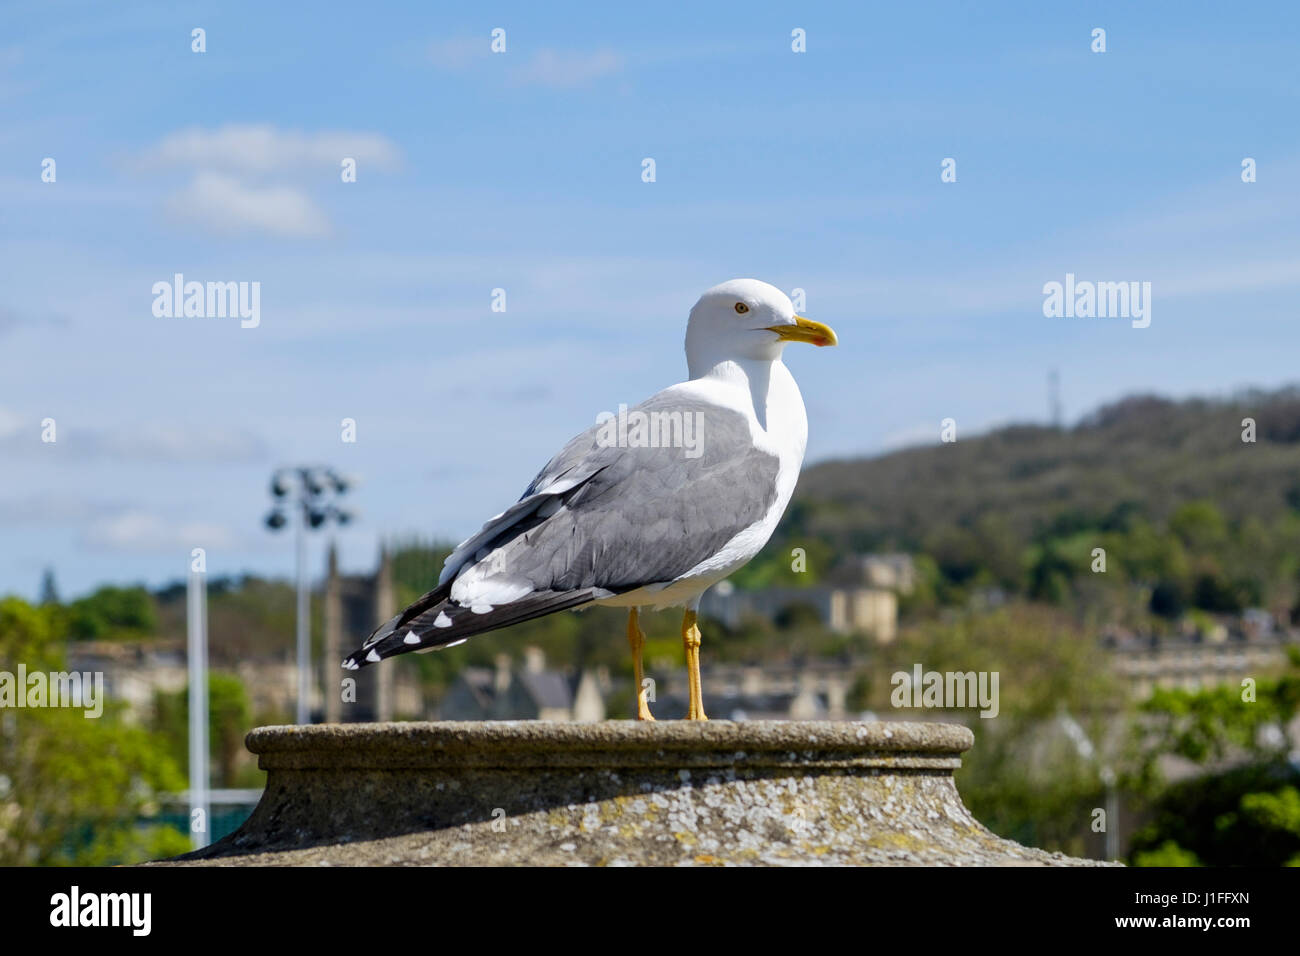 A large Seagull / Gull is pictured as it sits on a wall near Pulteney Bridge,Bath,England, UK - Stock Image